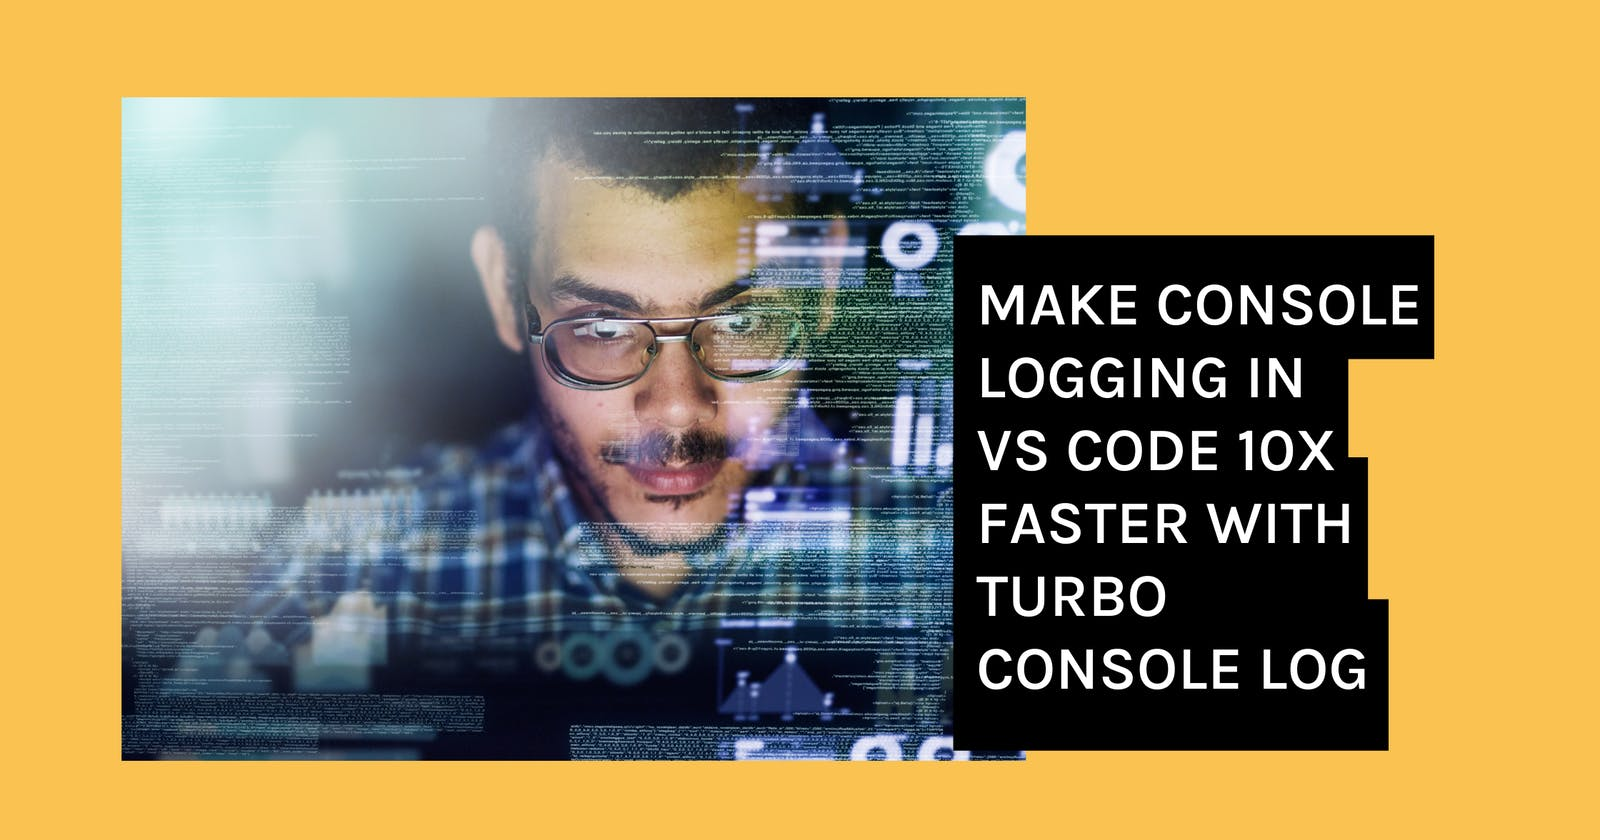 Make Console Logging in VS Code 10x Faster with Turbo Console Log